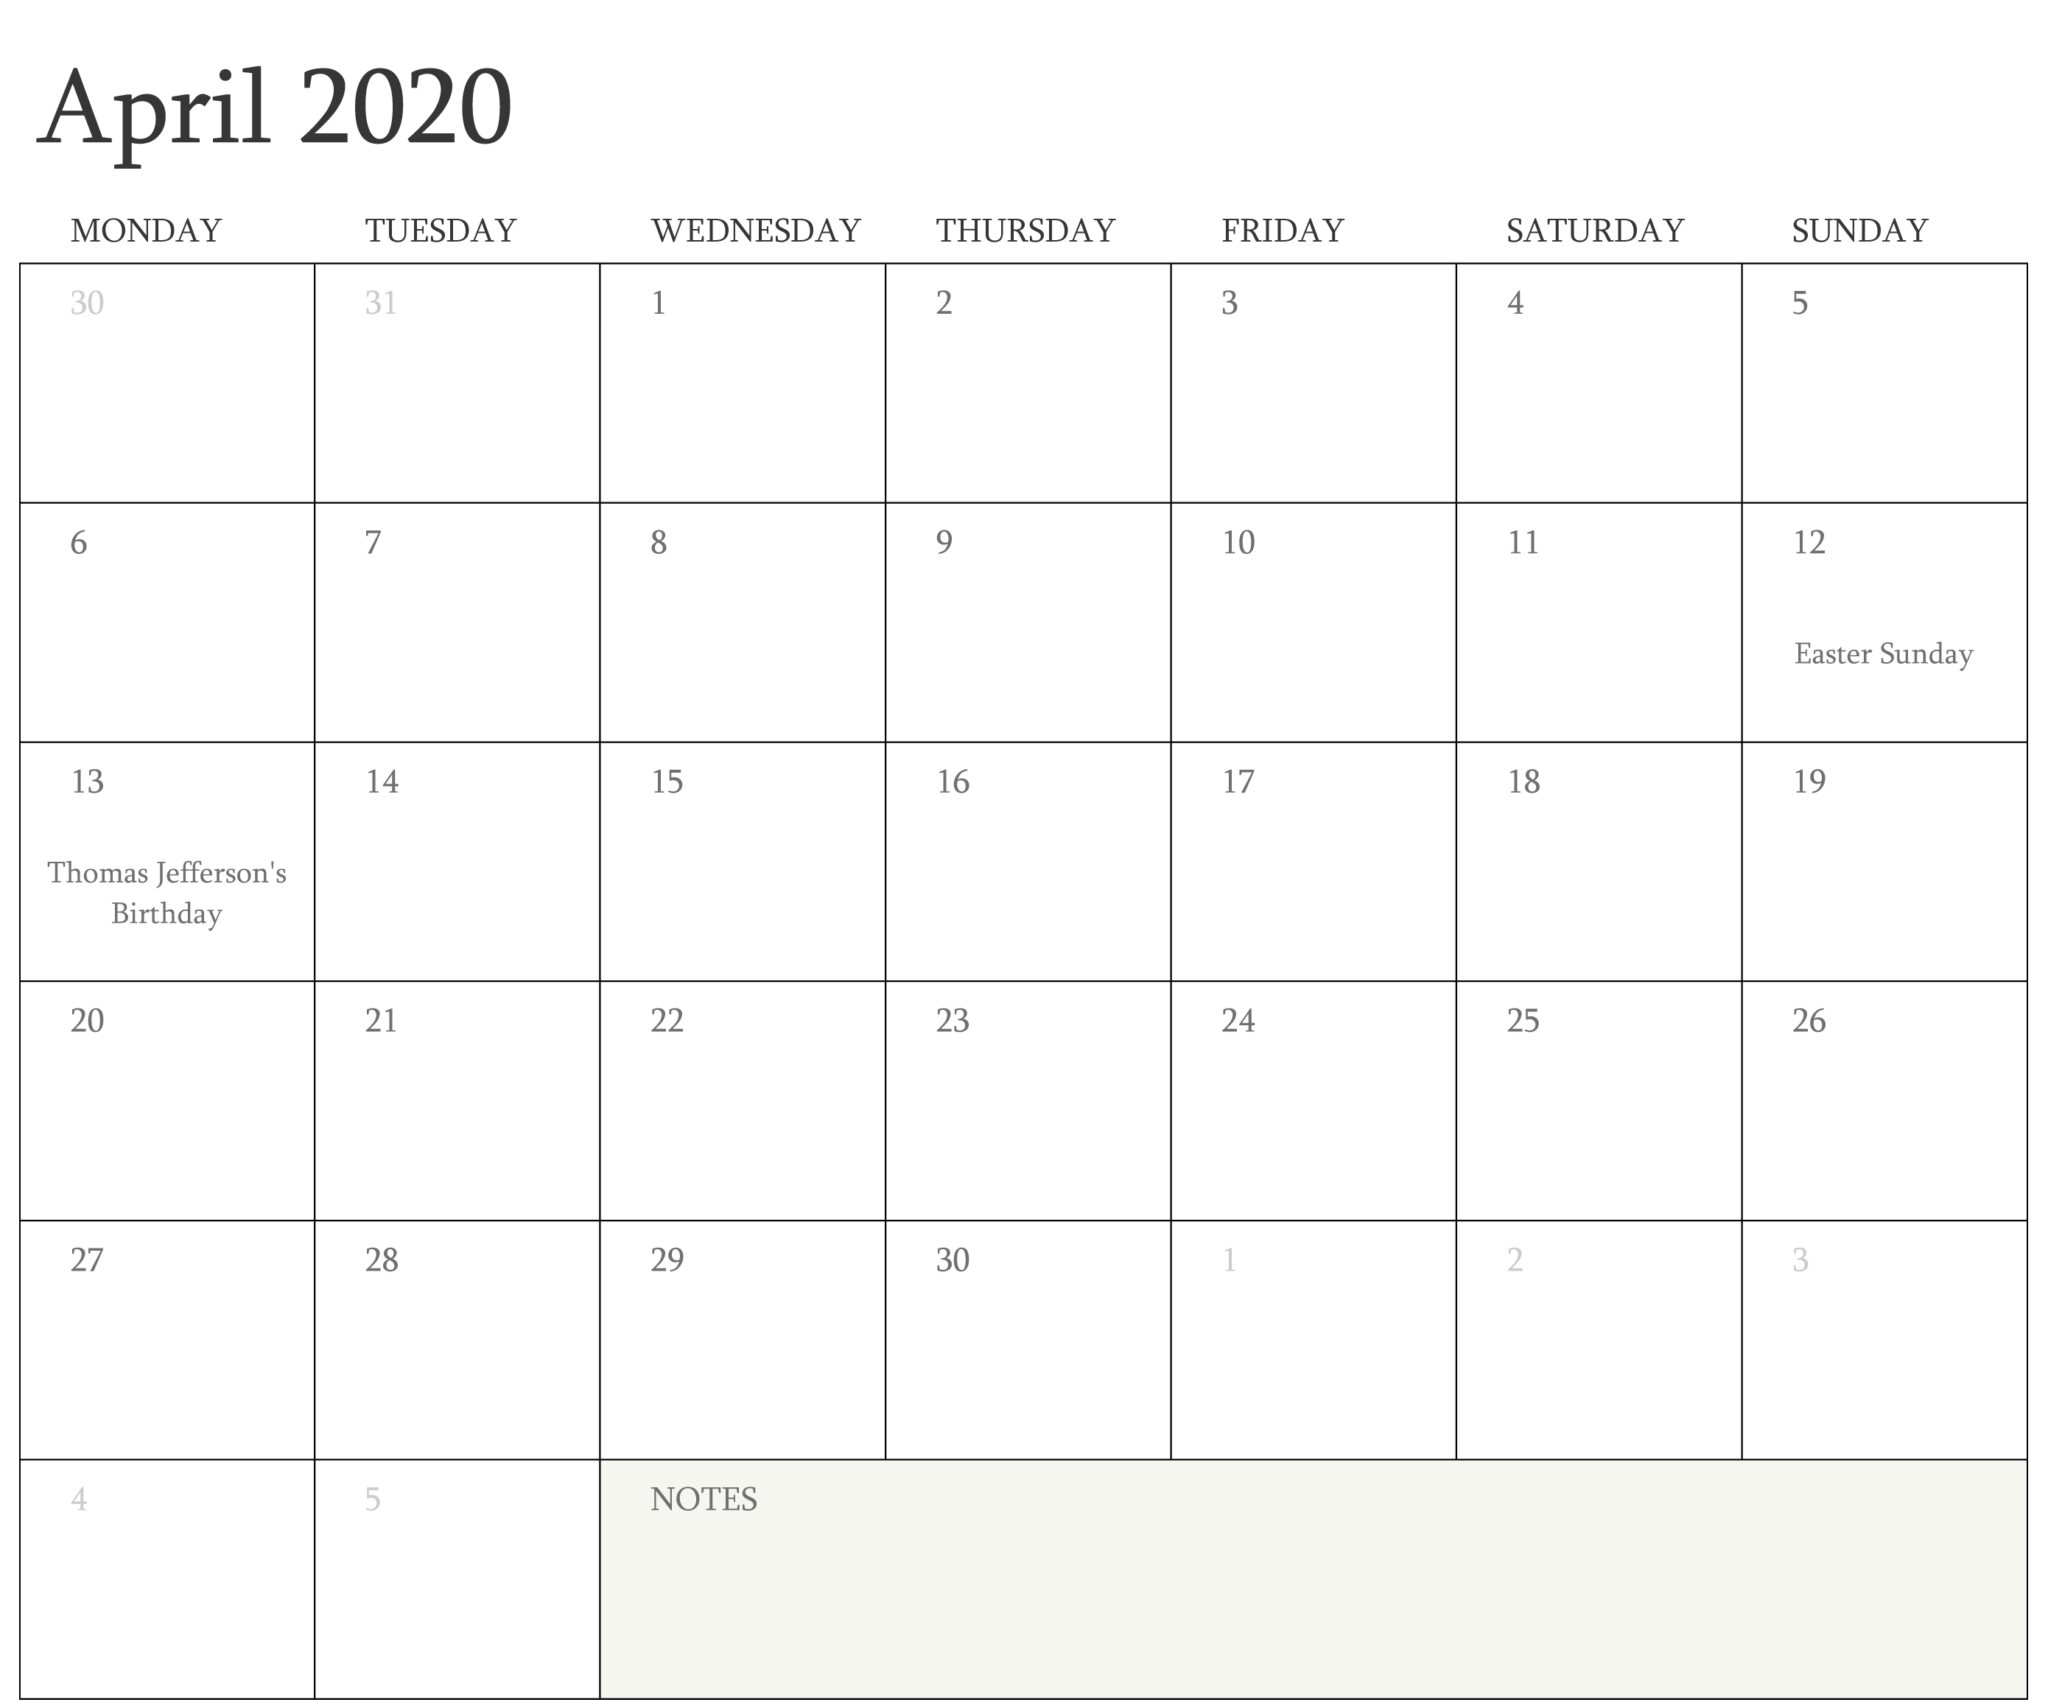 Editable Calendar April 2020 with Holidays